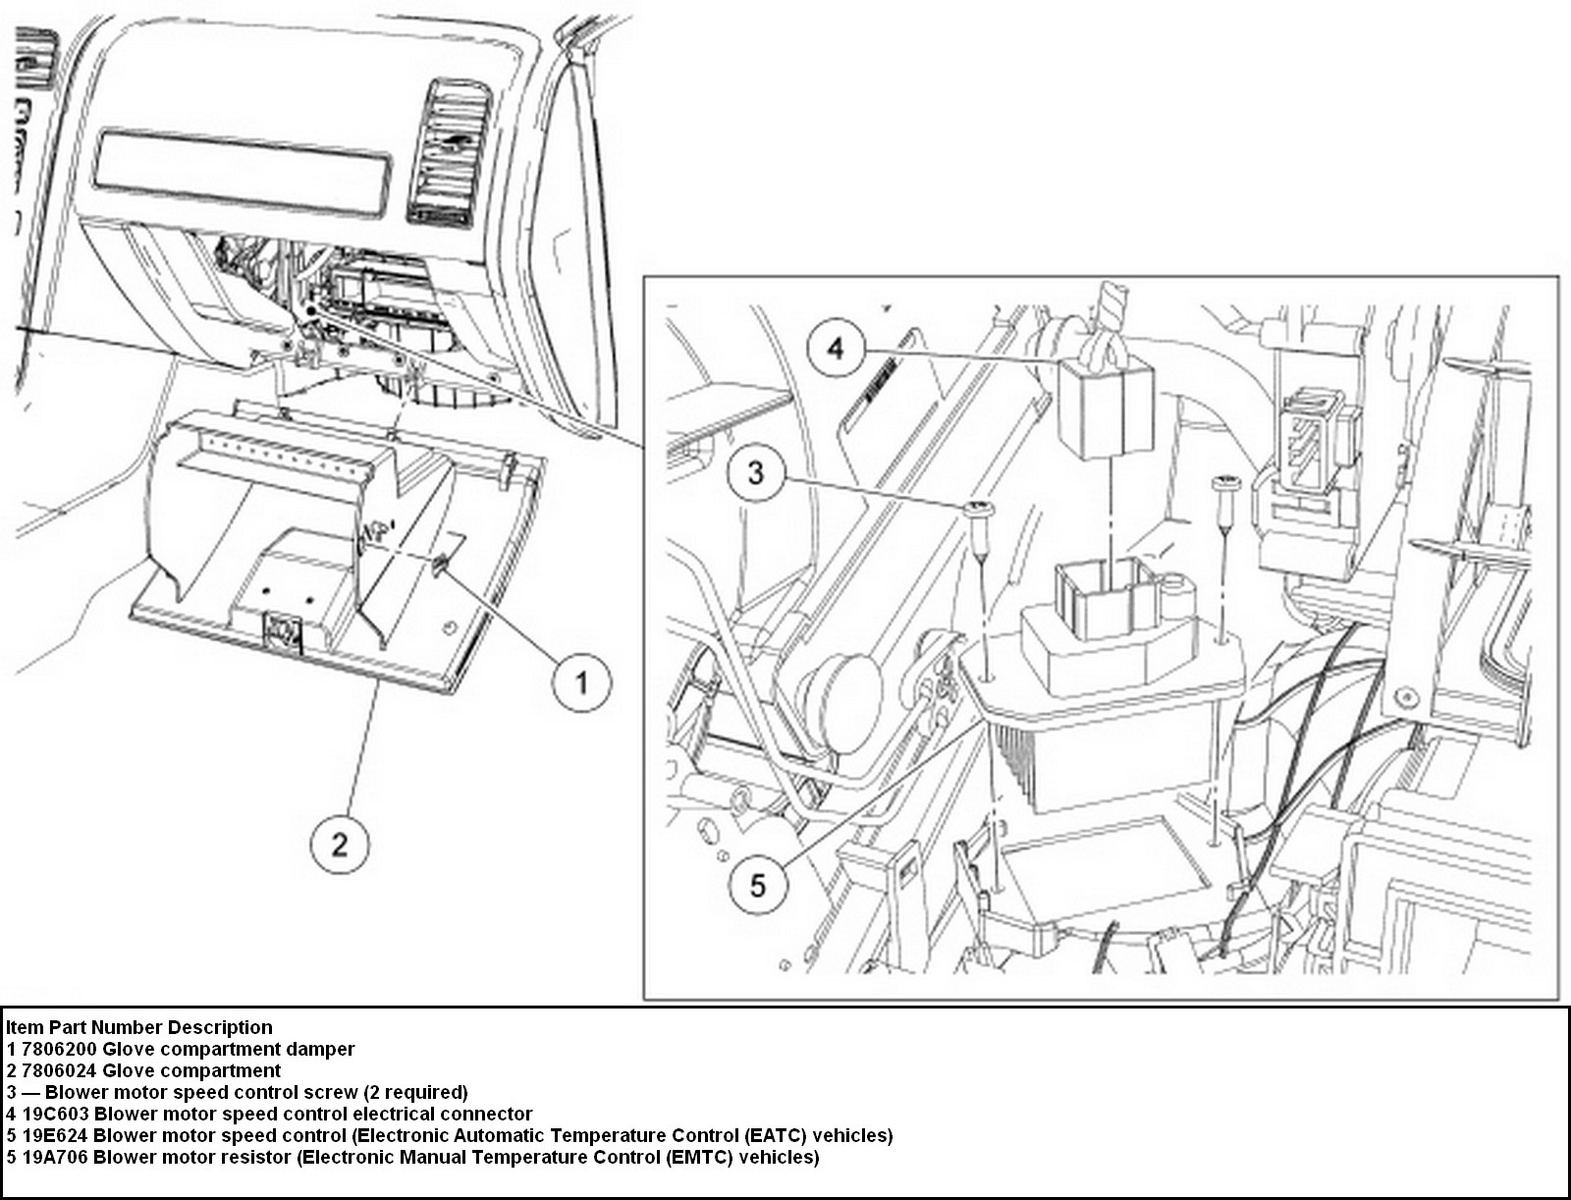 6wsgh Ford Taurus Se Four Electric Windows 2003 Taurus together with 2003 Ford Explorer Wiring Diagram Pdf additionally 2005 Ford Taurus Fuse Location furthermore 94 Ford E350 Wiring Diagram furthermore 2004 Ford F150 Stereo Wiring Diagram. on 2001 ford taurus radio wiring diagram